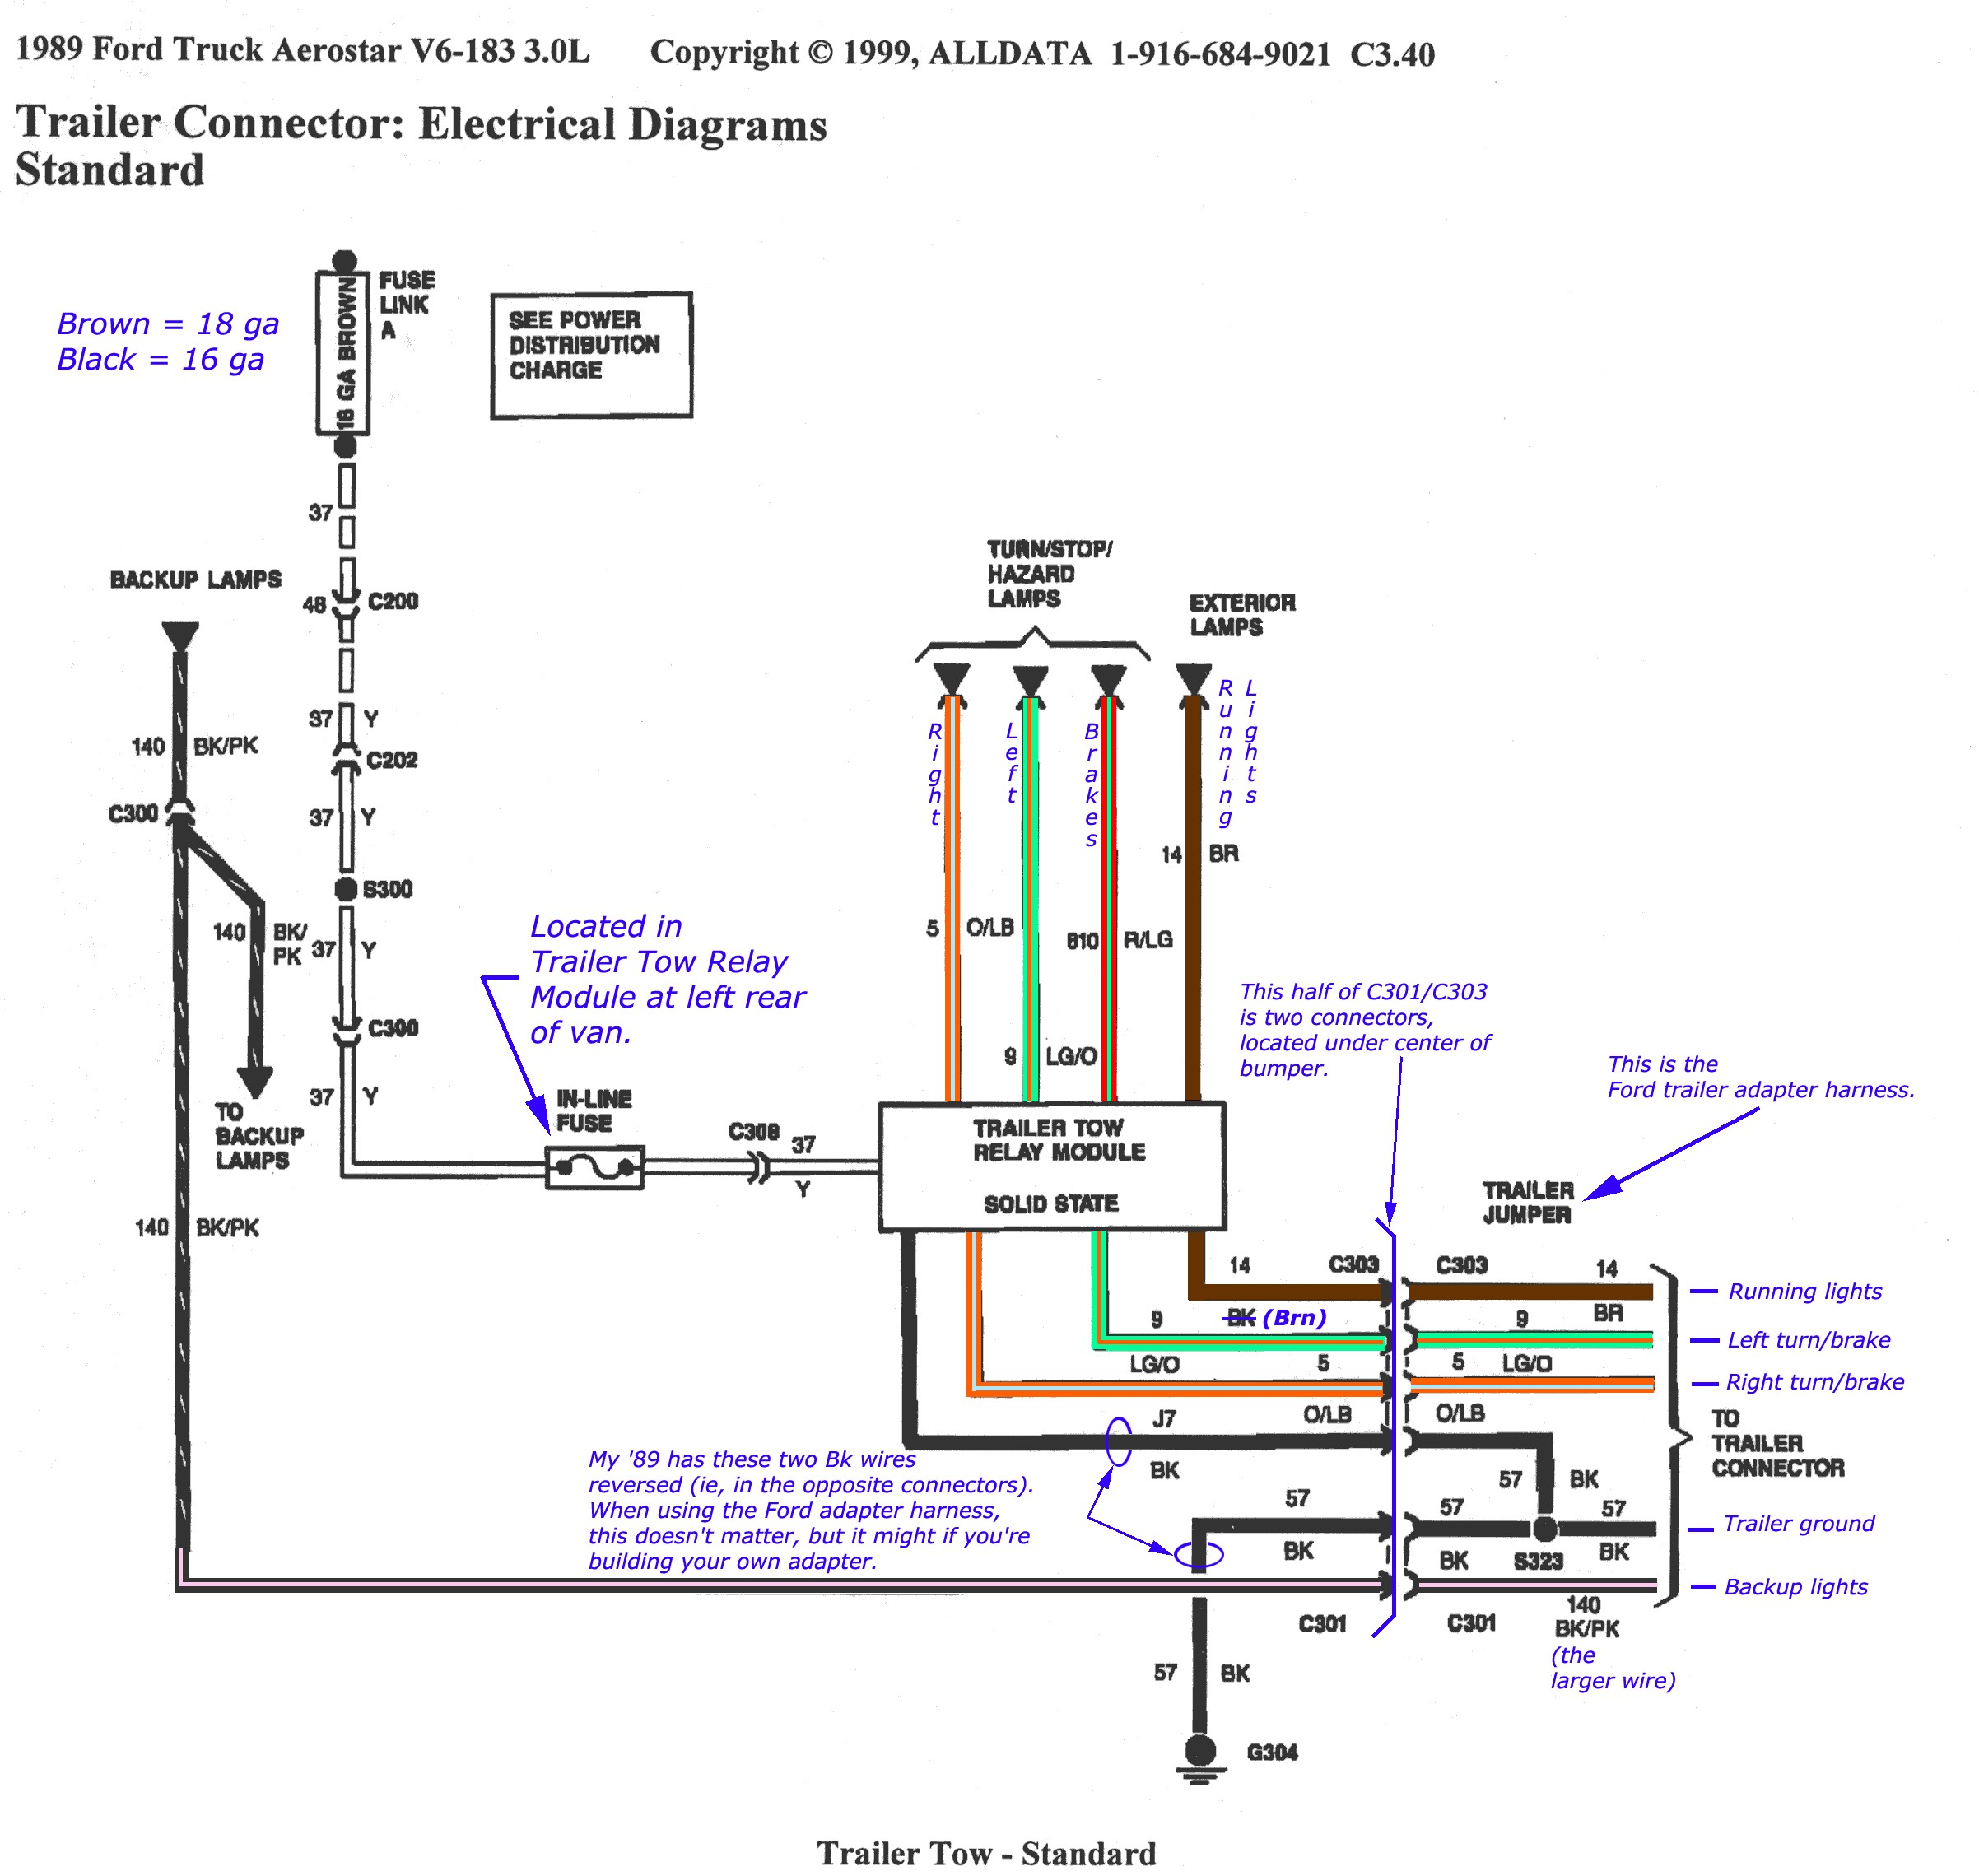 7 Way Trailer Plug Wiring Diagram Yukon | Wiring Library - 2001 Yukon Trailer Wiring Diagram